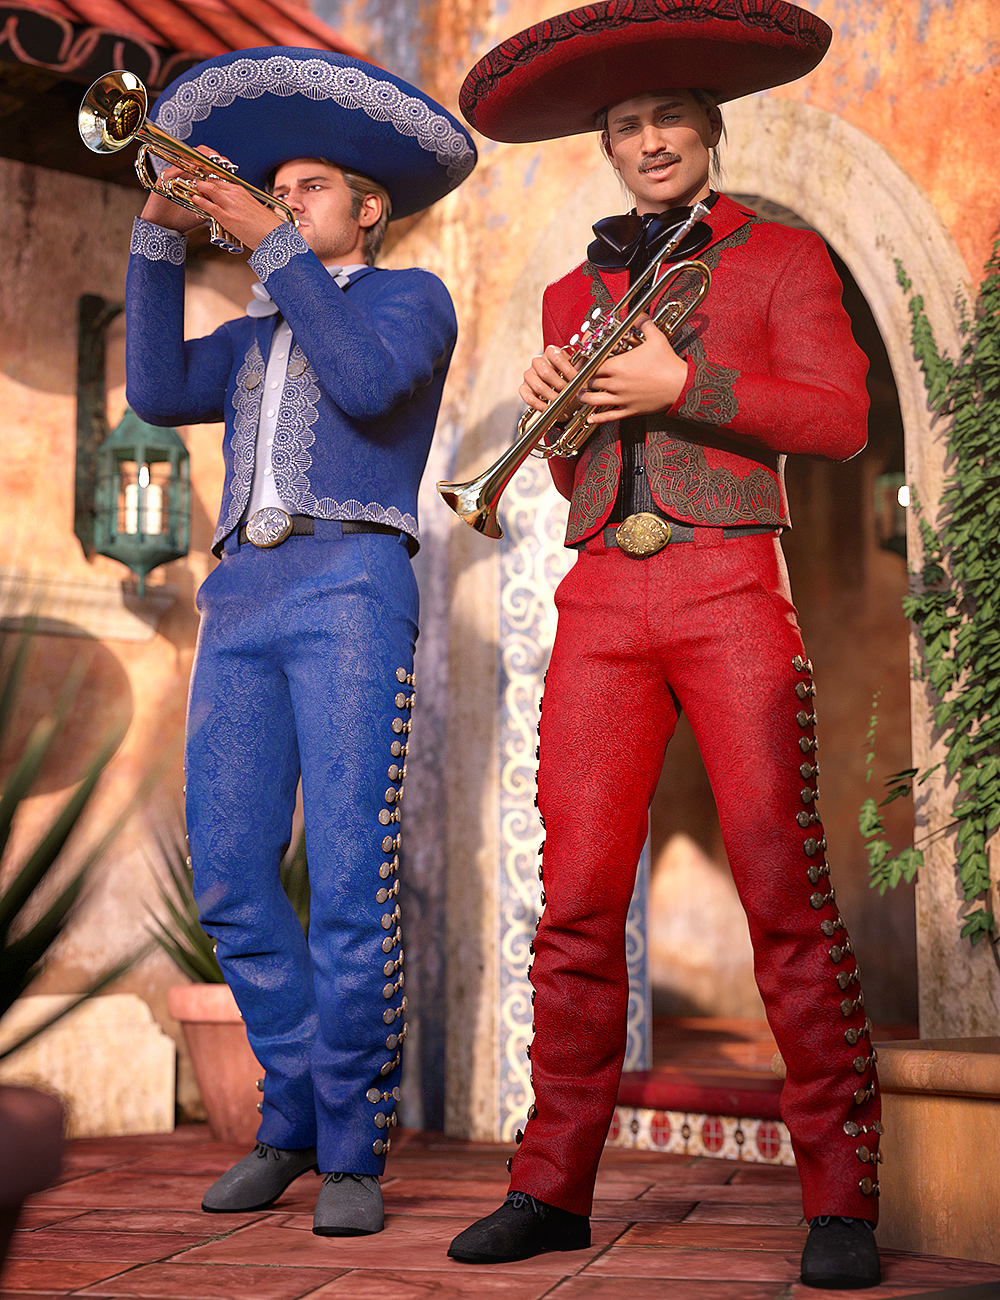 Mariachi Male Outfit Textures by: Anna Benjamin, 3D Models by Daz 3D